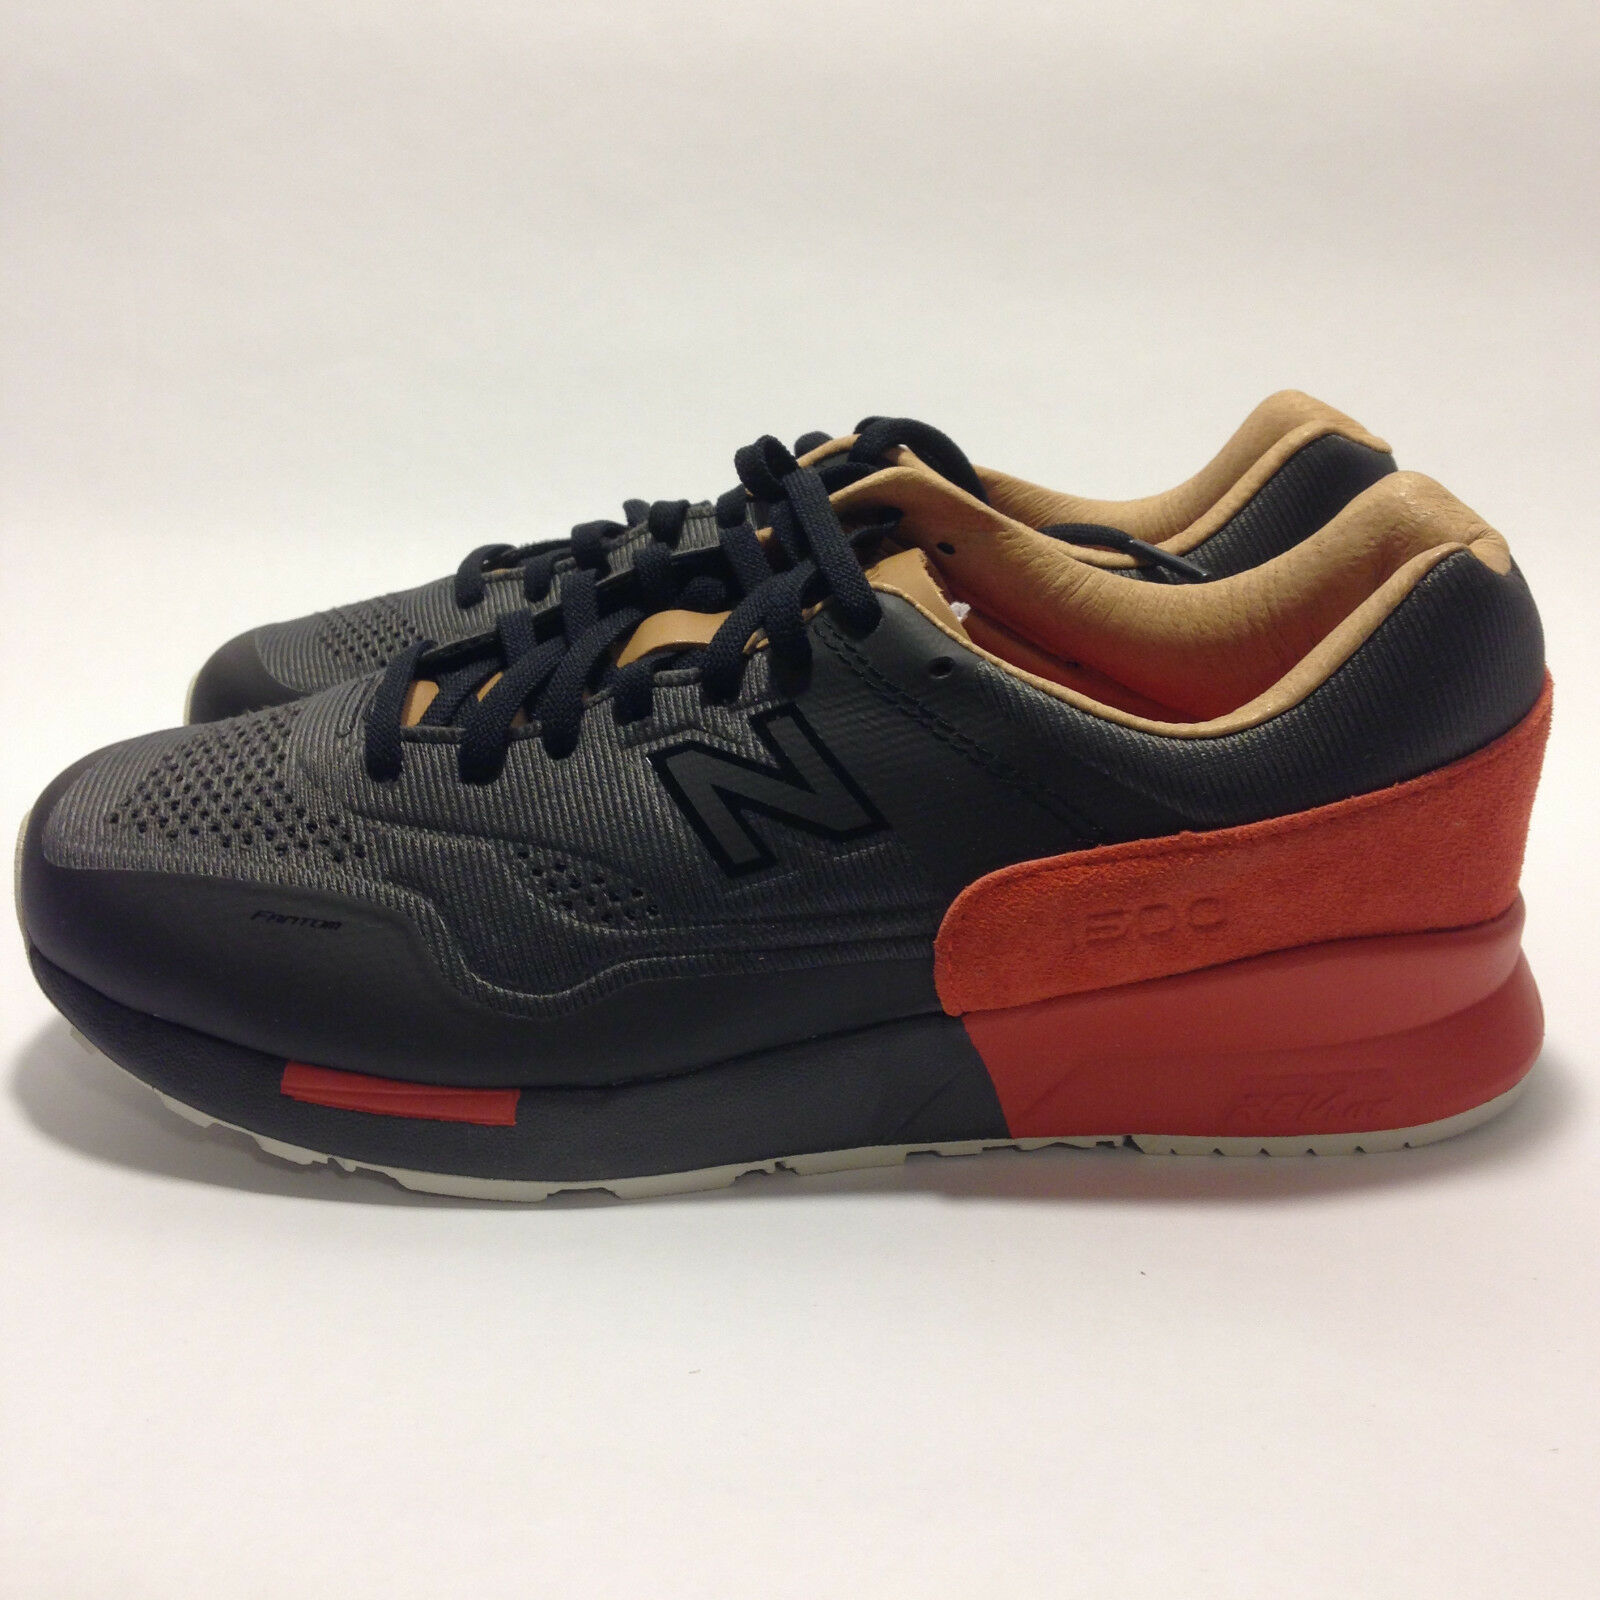 New Balance 1500 Sneakers [MD1500FB] Classic/Retro Men's Running Sneakers 1500 Size: 7.5 8d0a26